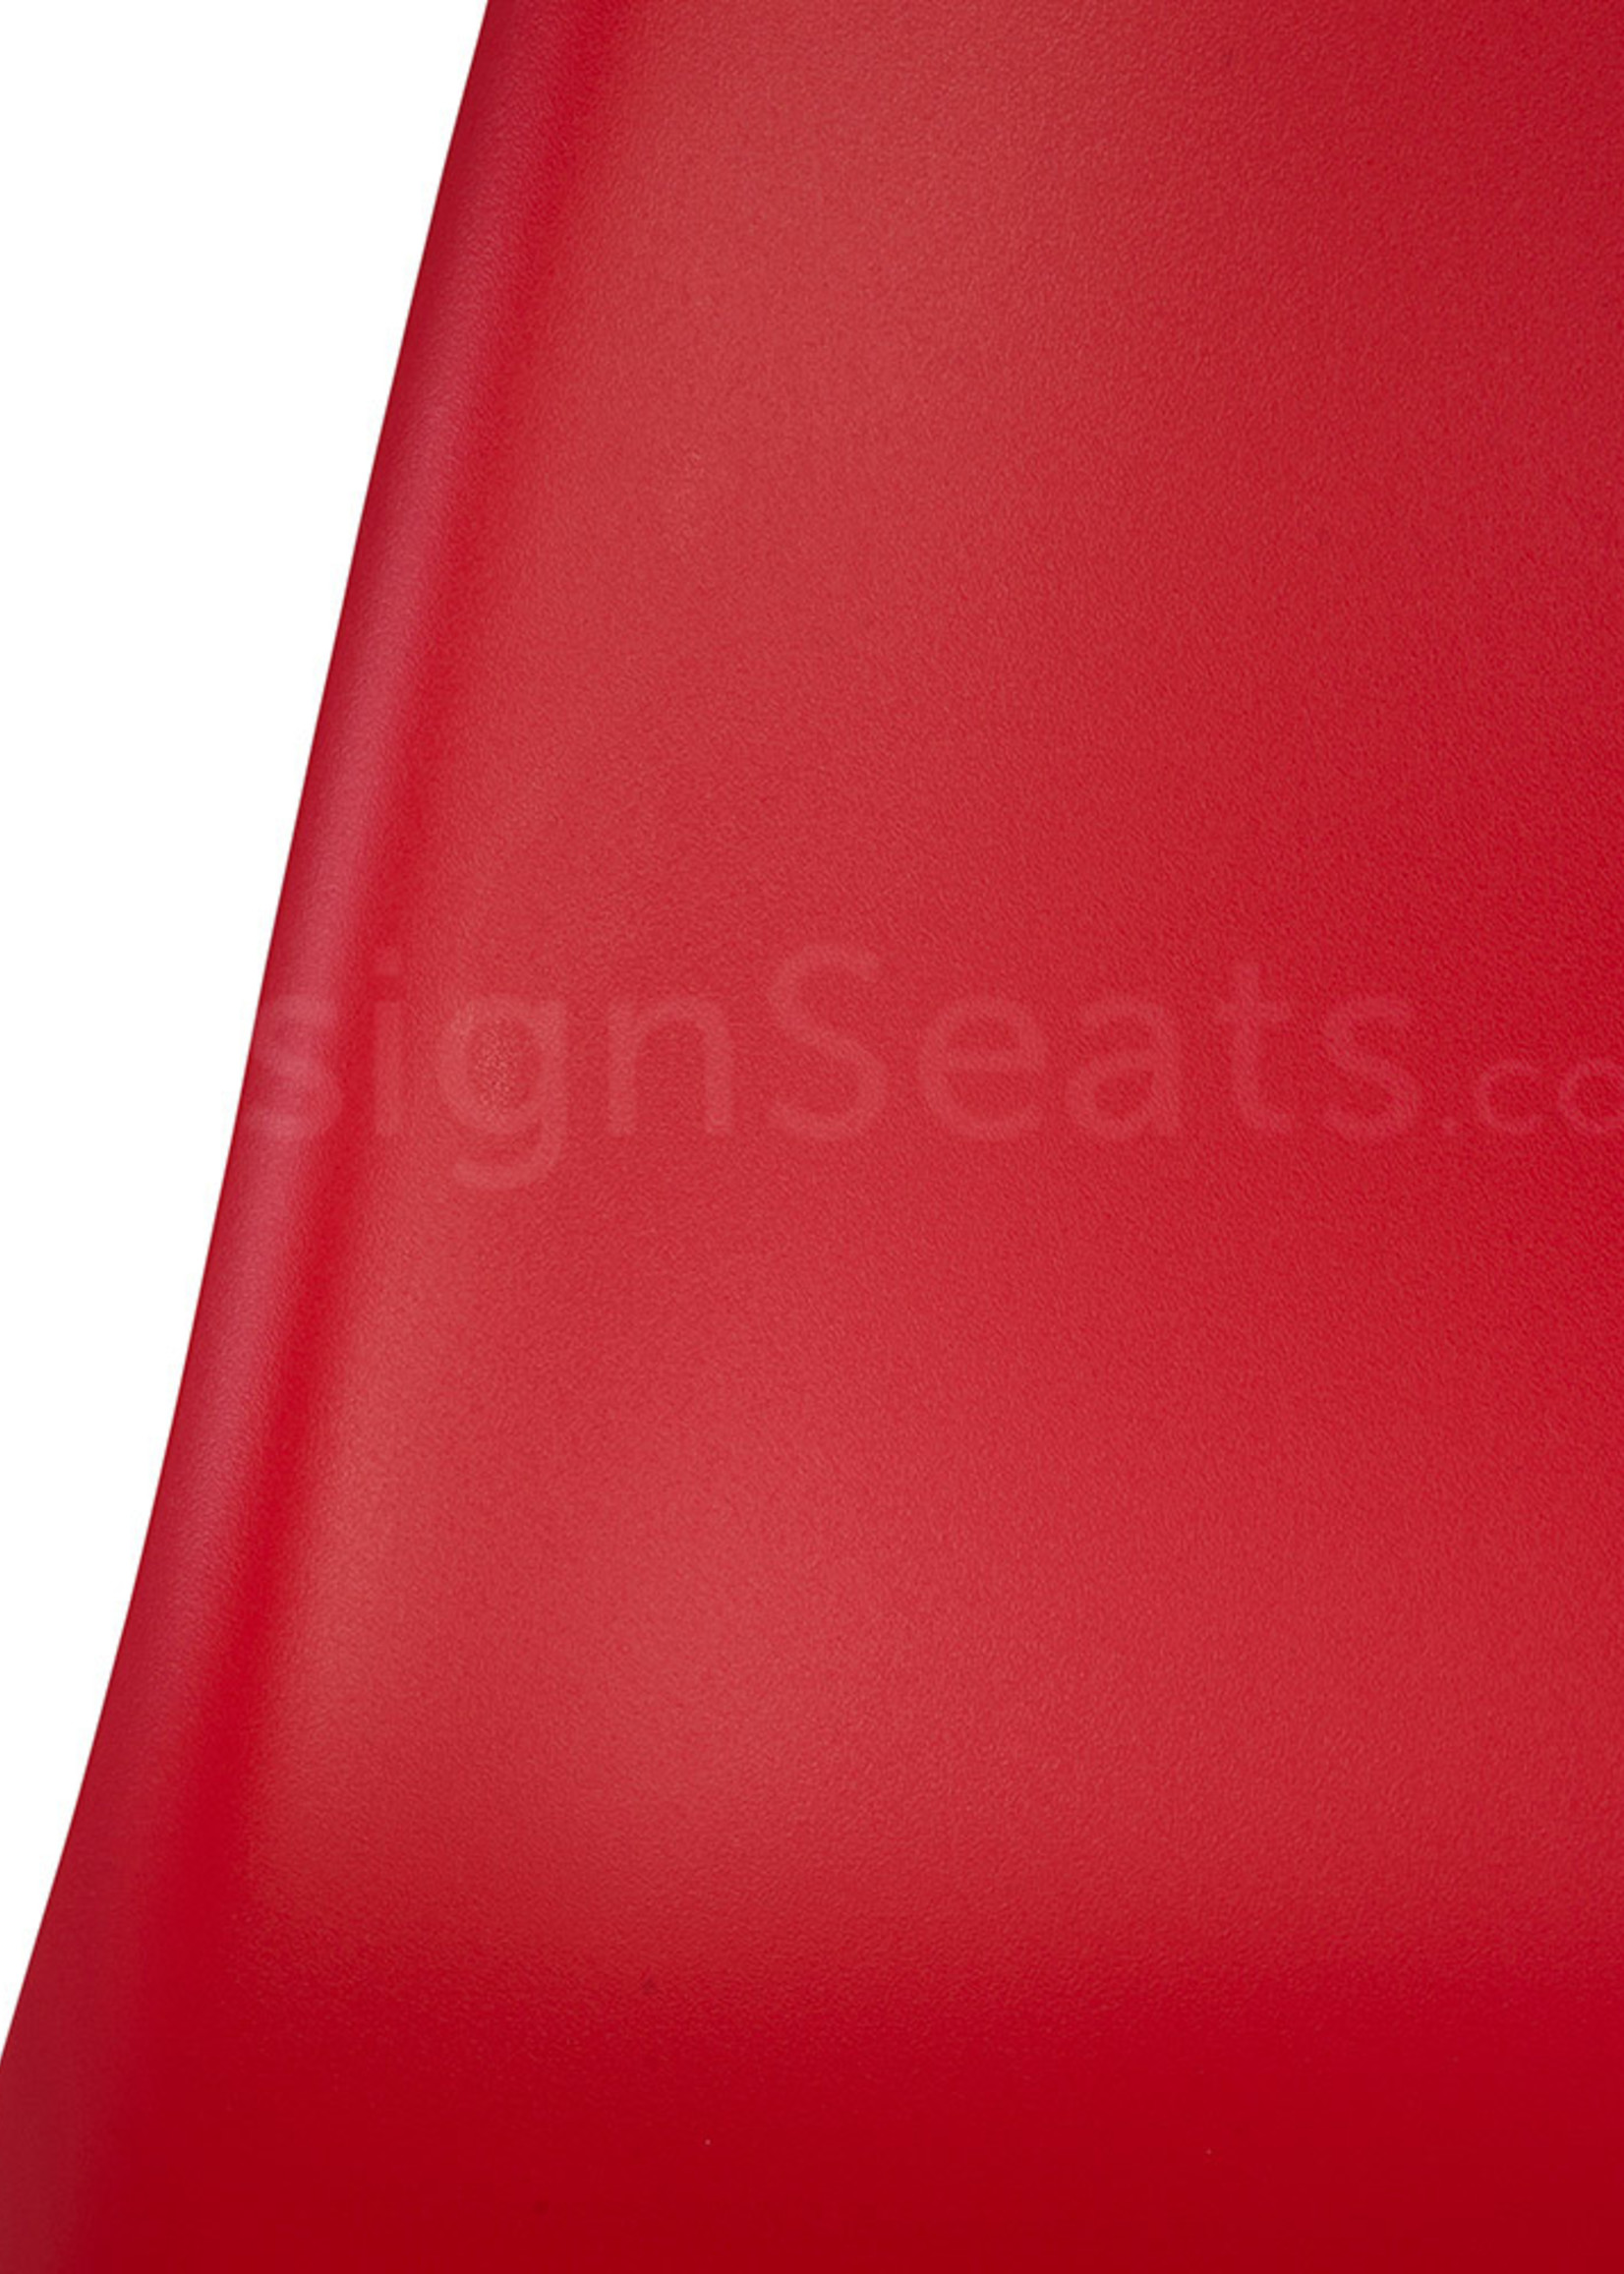 DSS Stacking Chair Dining Chair Red